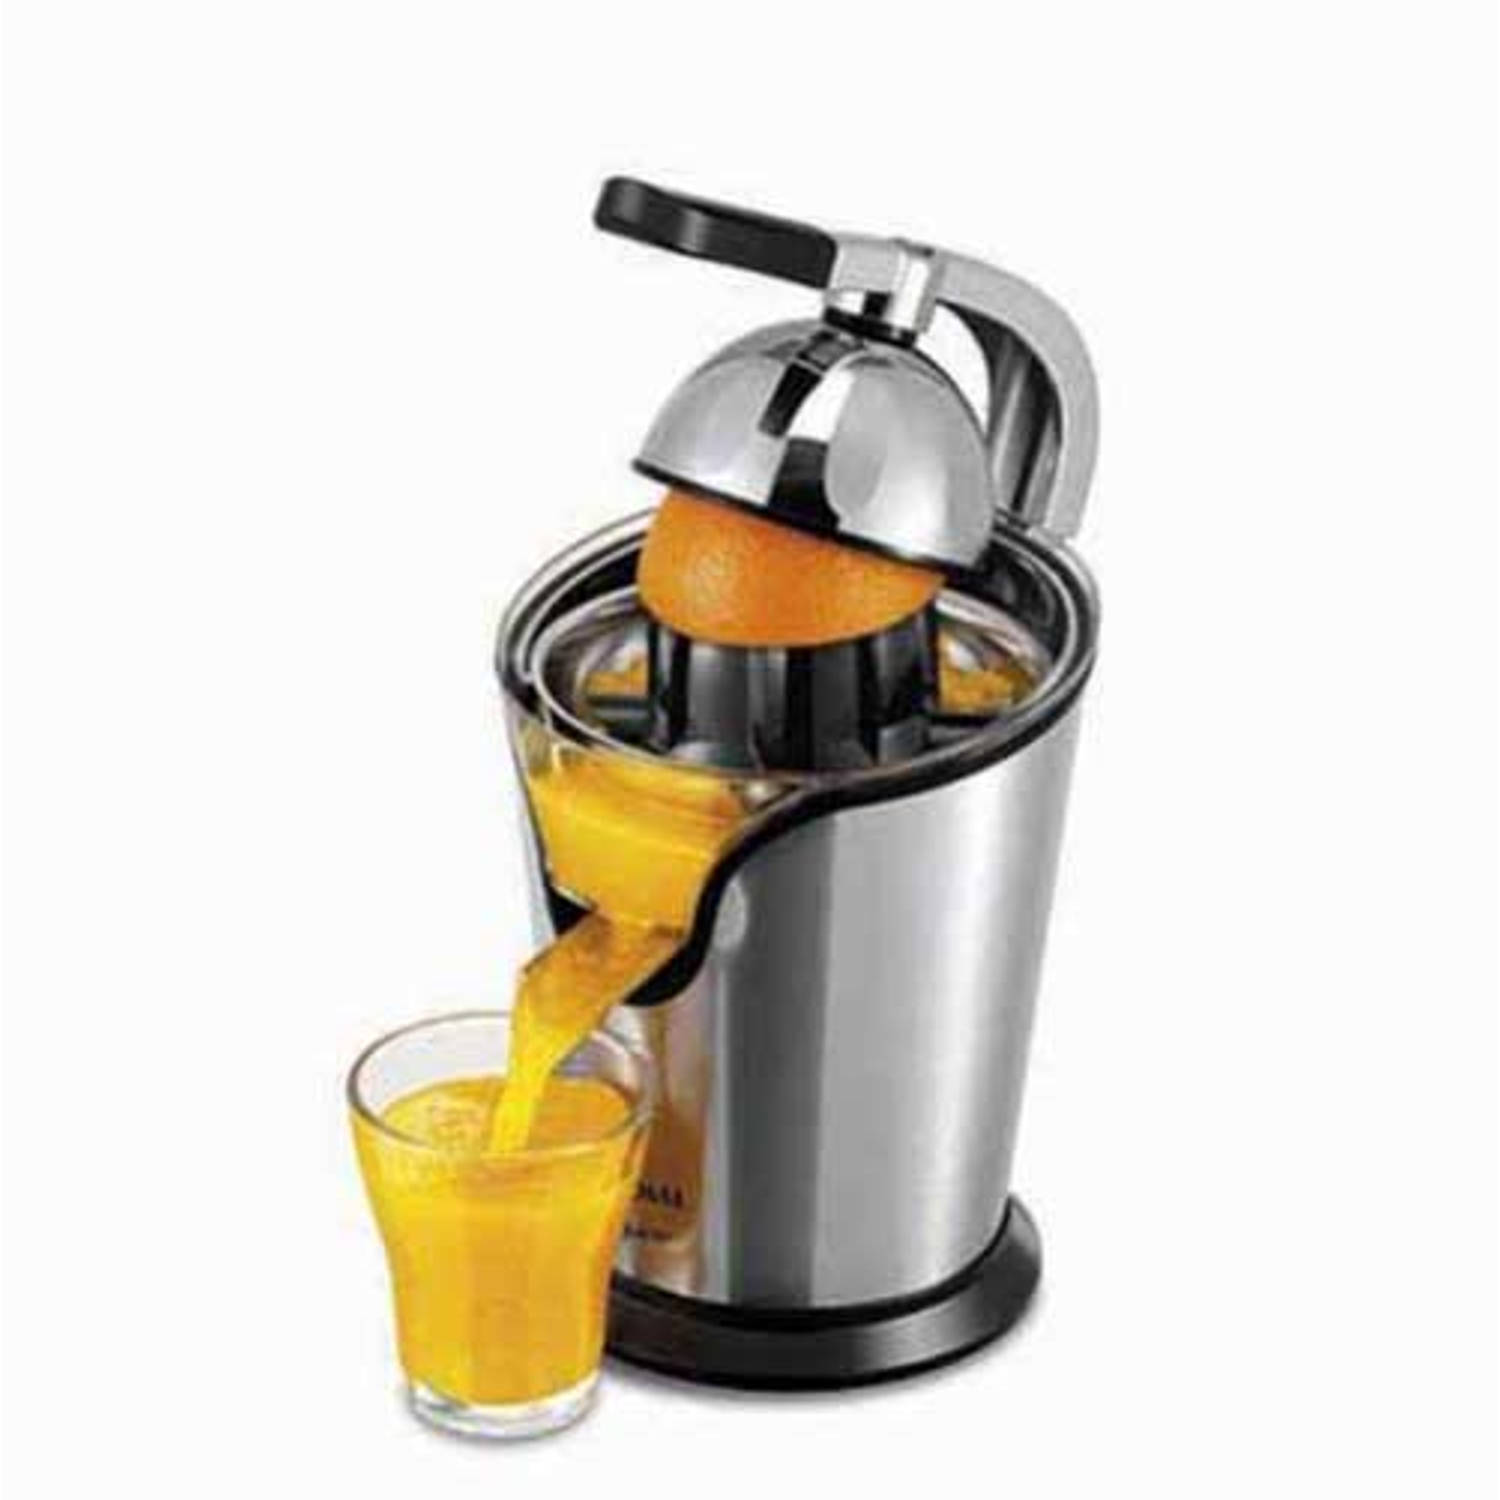 Mondial rvs citrusjuicer